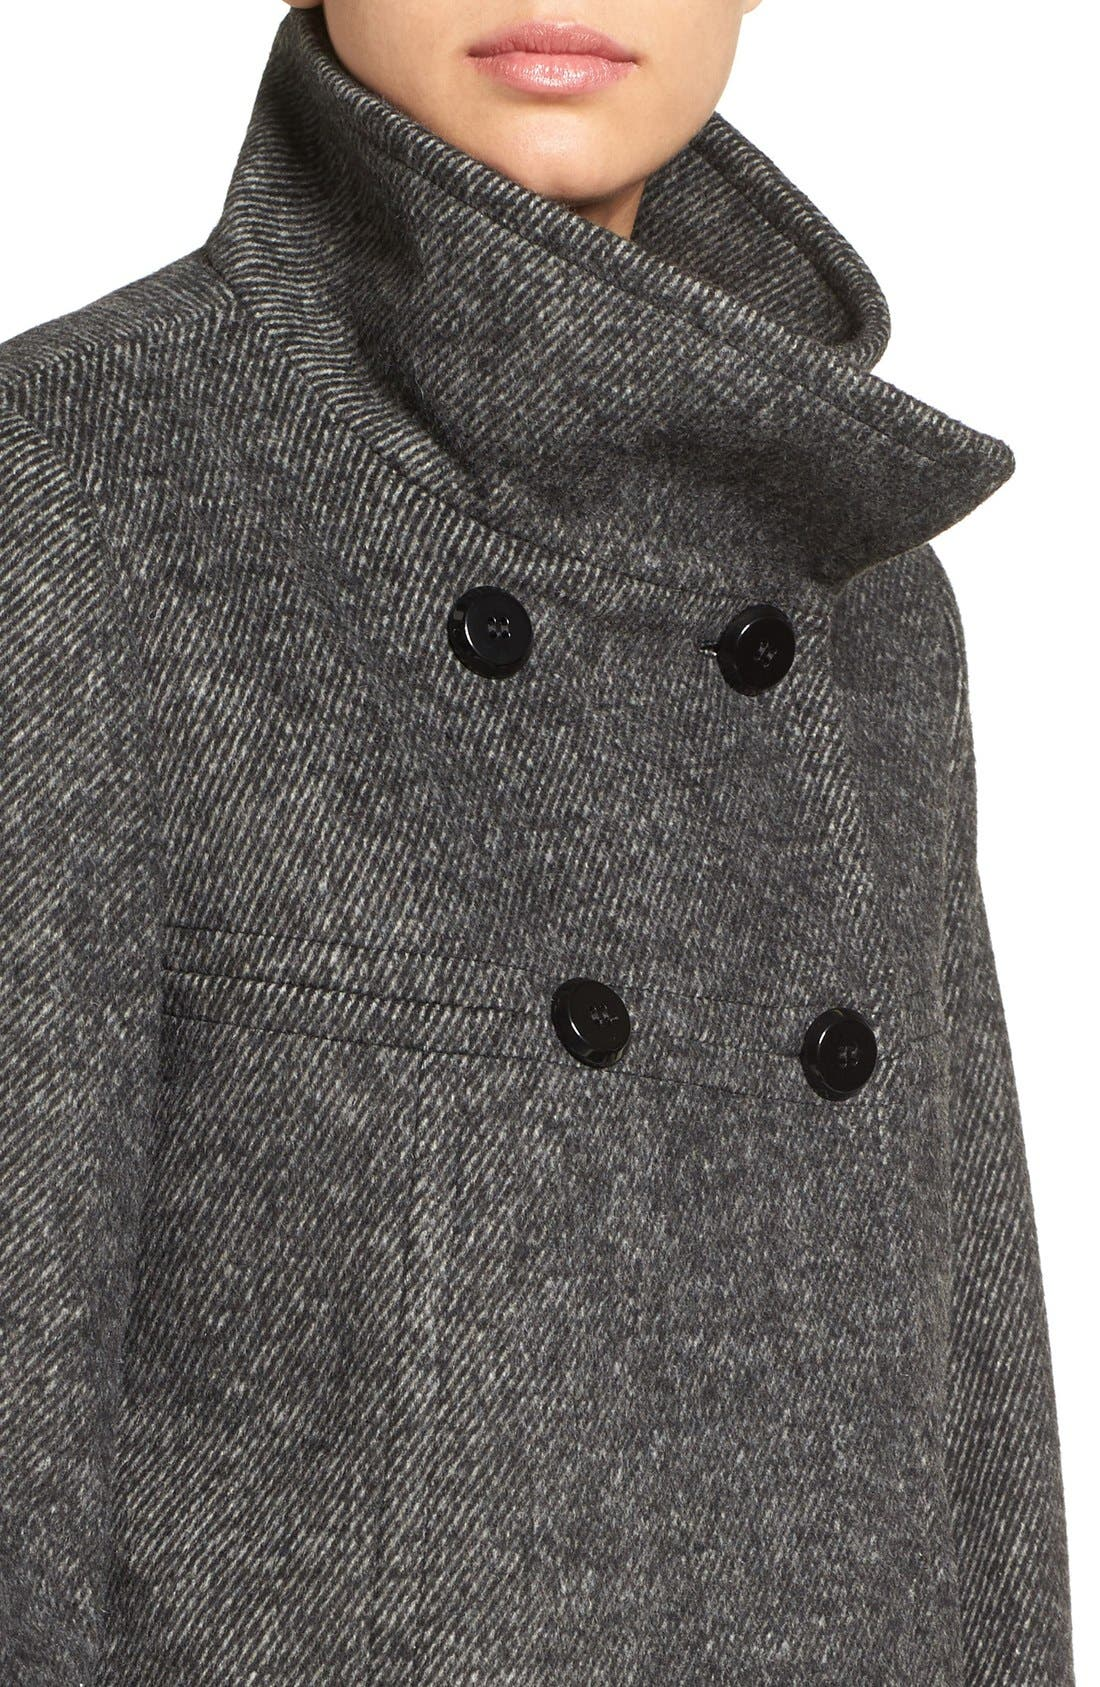 Double Breasted Swing Coat,                             Alternate thumbnail 4, color,                             Black/ Charcoal